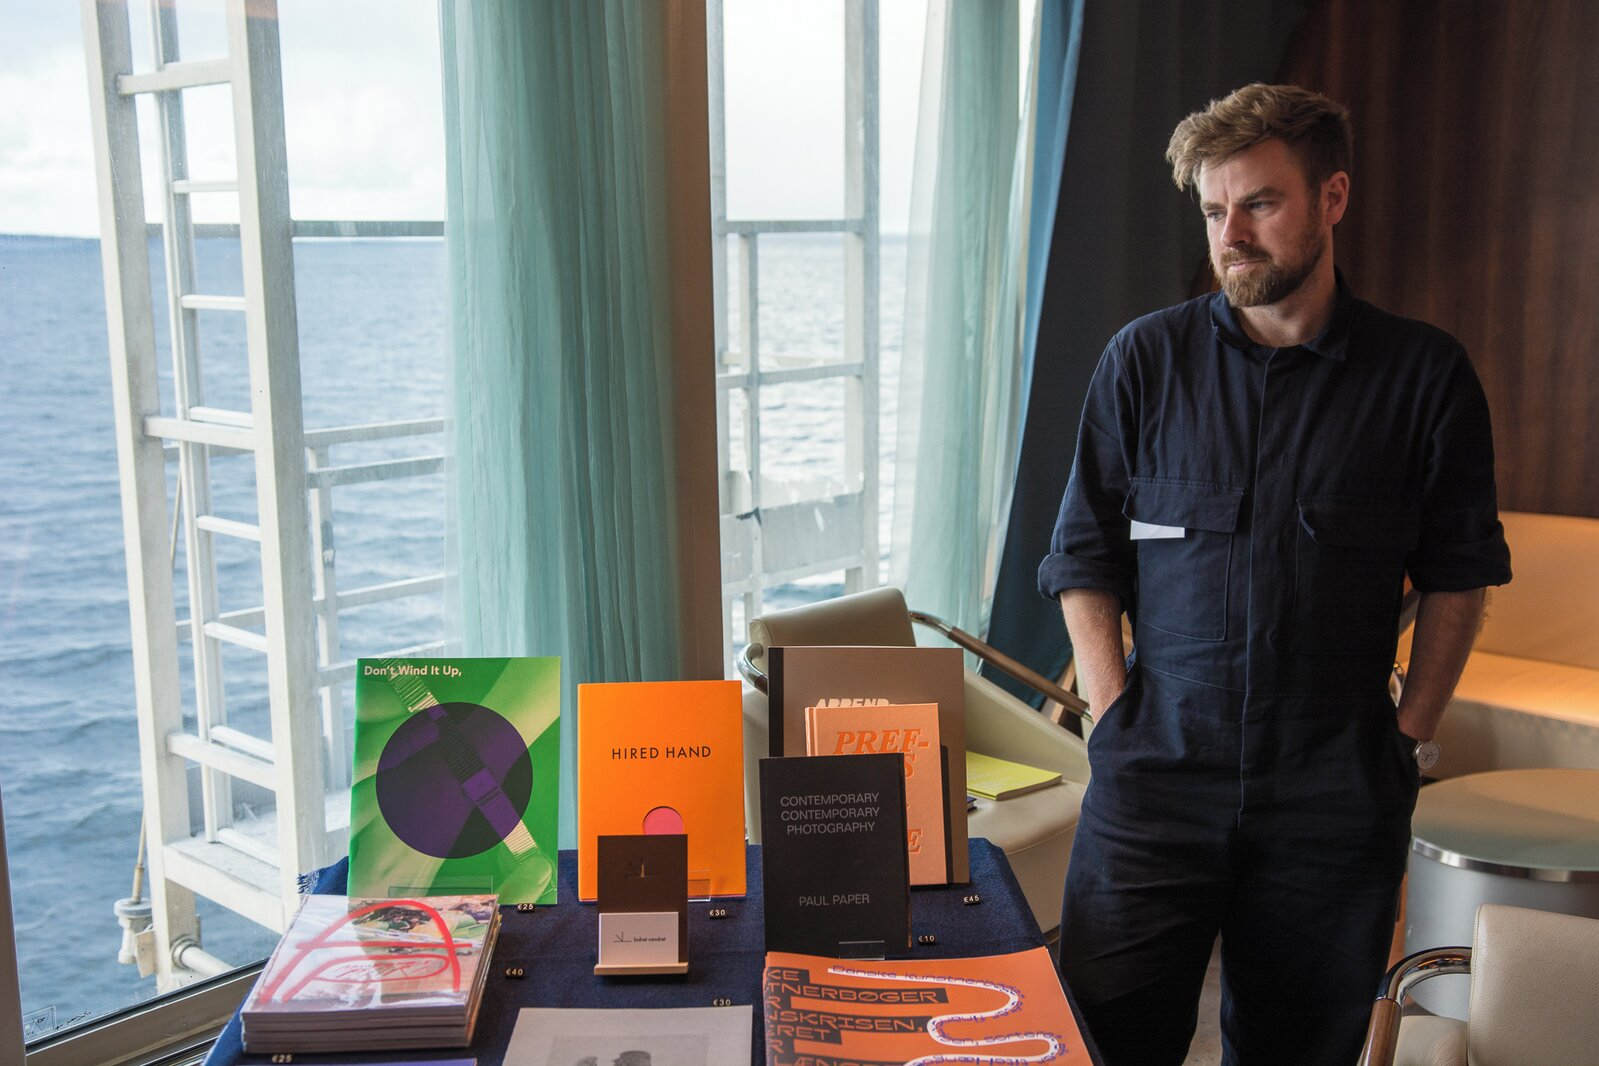 Art book fair by lodret vanret bergen art book fair mondo books and heavy books photo laimonas puisys coast contemporary